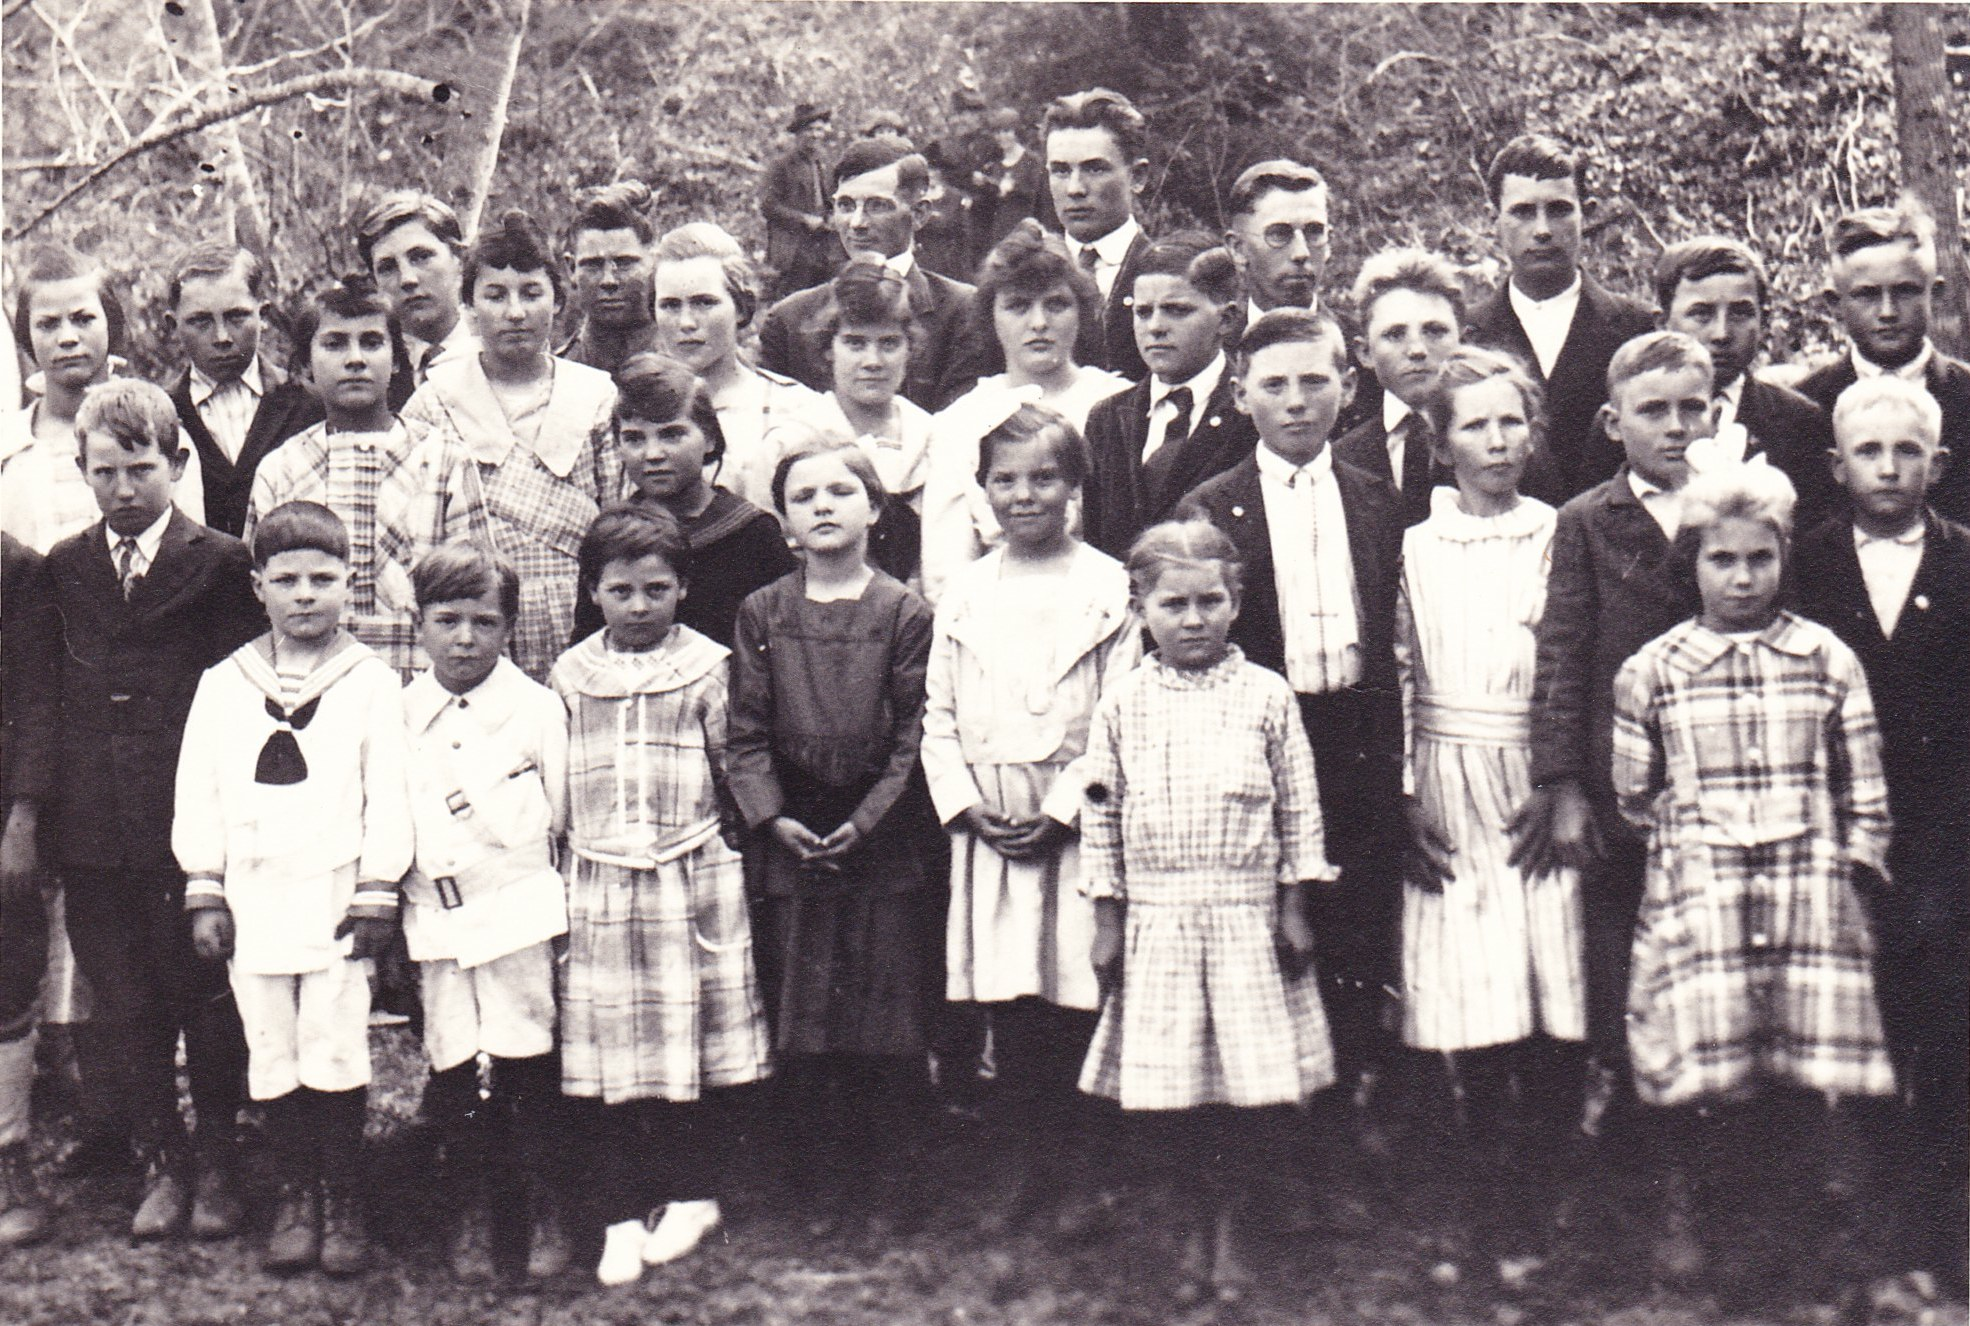 Smith and Eckards at Stony Run School: 1st Row: Paul Vernon (Vernon) Eckard, 1st boy on left in white; Hazel Jane Eckard, 4th on 1st row in dark dress. 2nd Row: Beulah Eckard is in middle with white beside Claude Cameron (Cameron) Eckard in dark coat and white shirt with tie. 3rd Row: Maybe Lula Smith with light hair and light complexion.